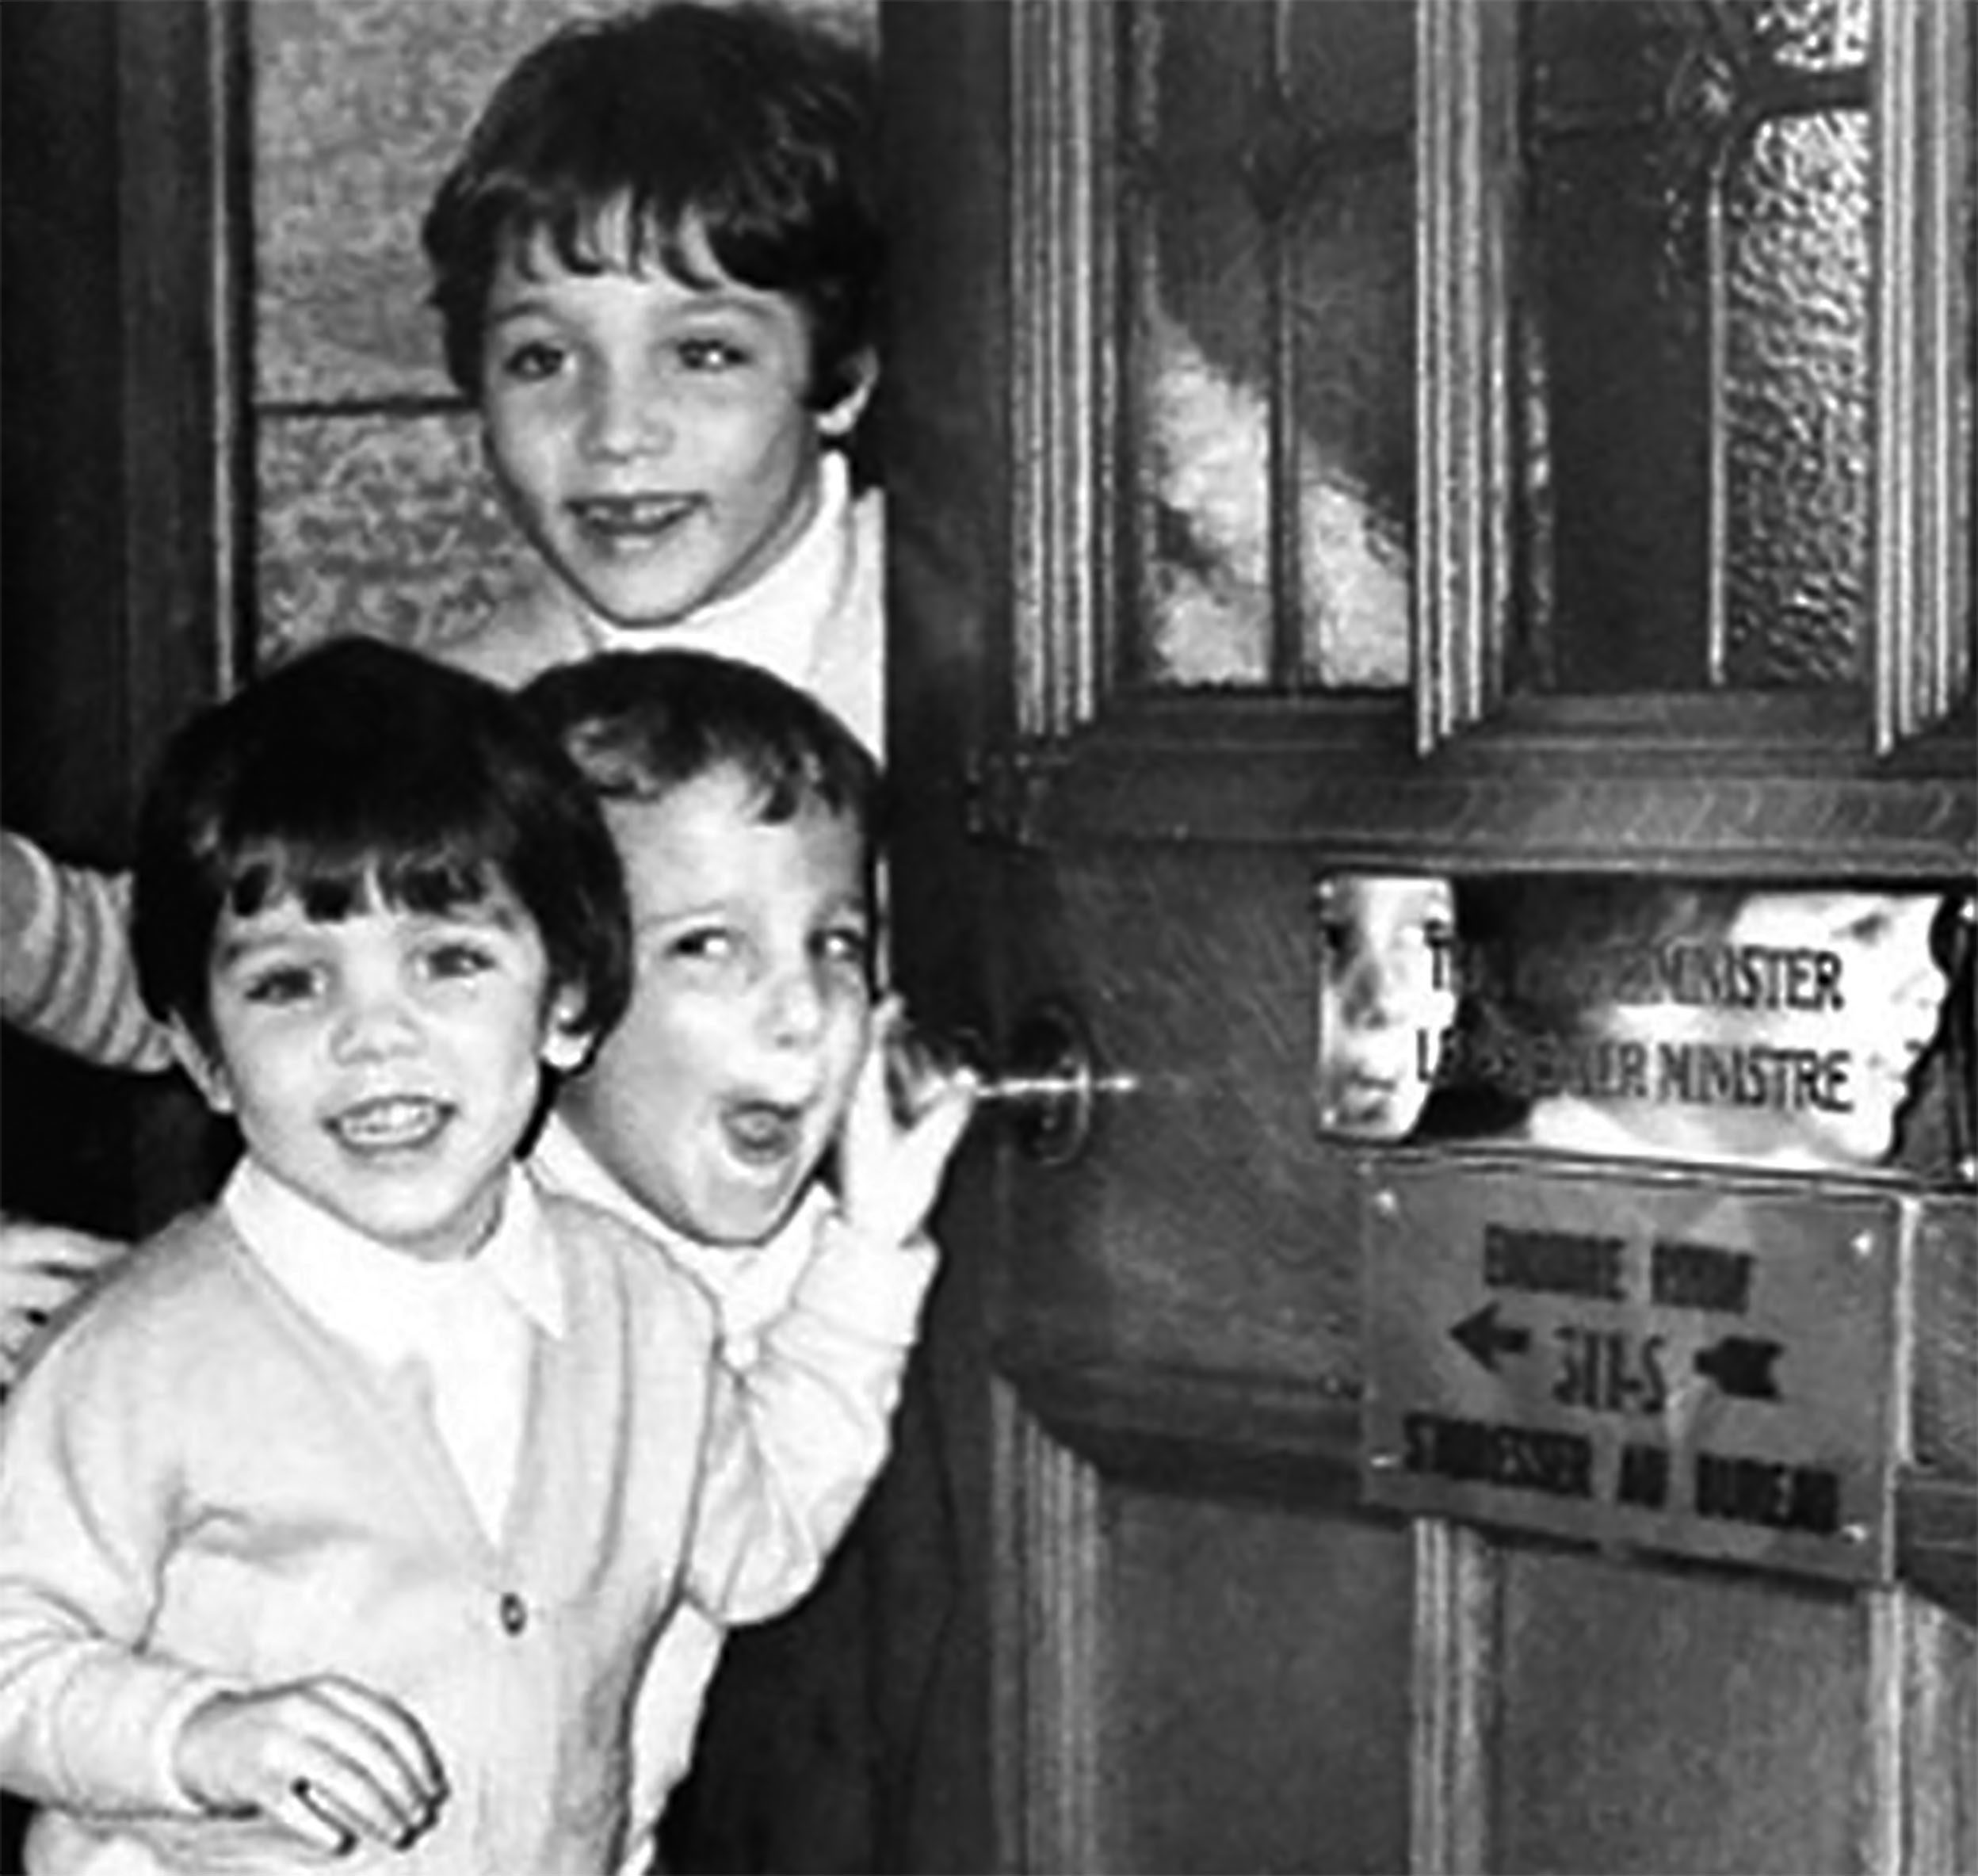 Justin with brothers Michel and Alexandre 'Sacha' peek out of their father's office in 1978.